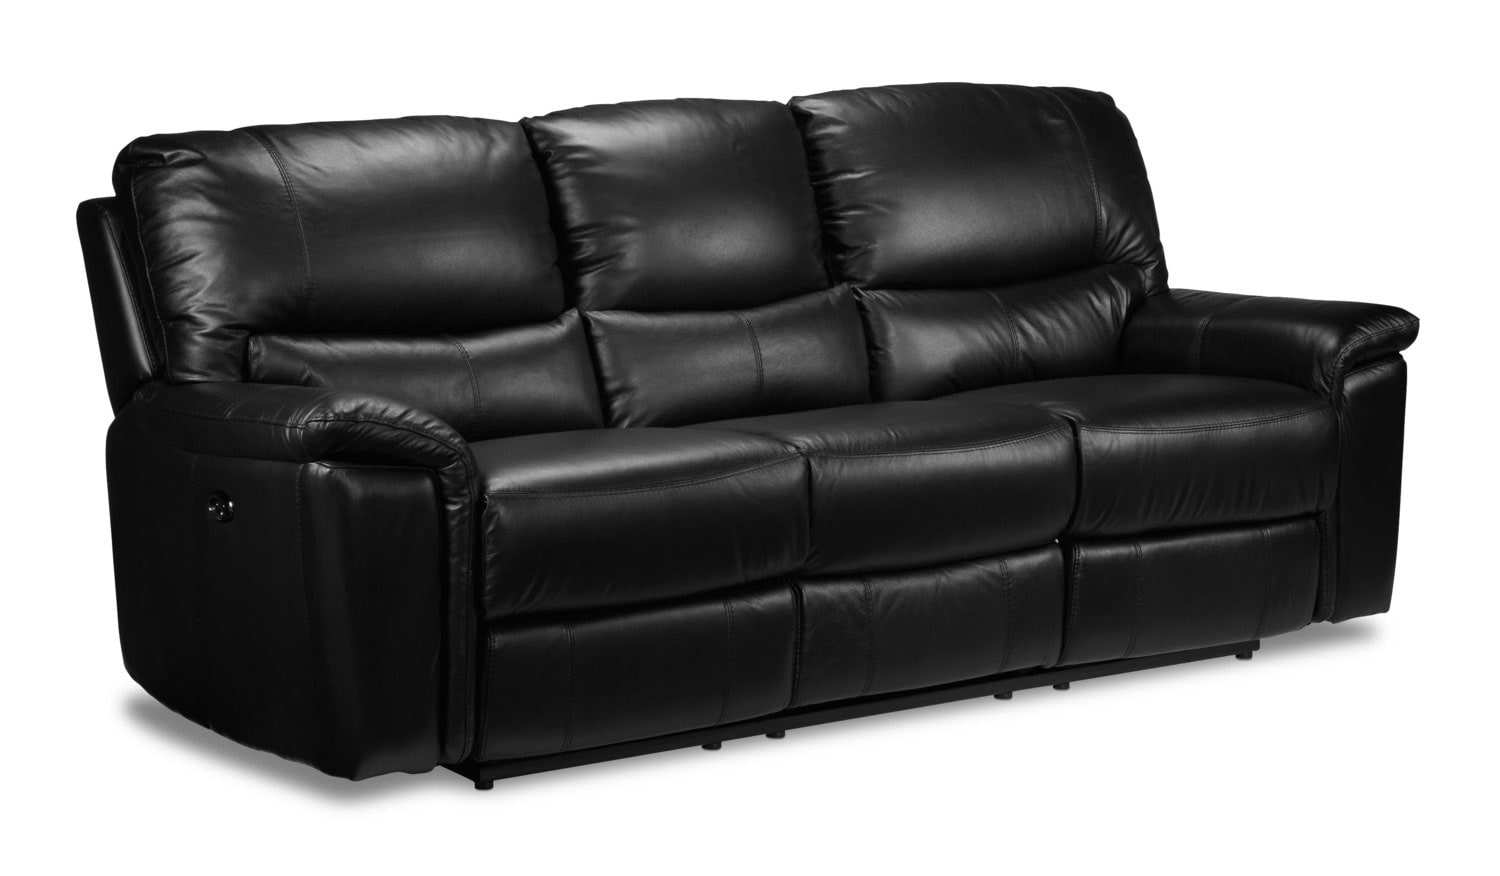 Nolan power reclining loveseat black leon 39 s Power reclining sofas and loveseats